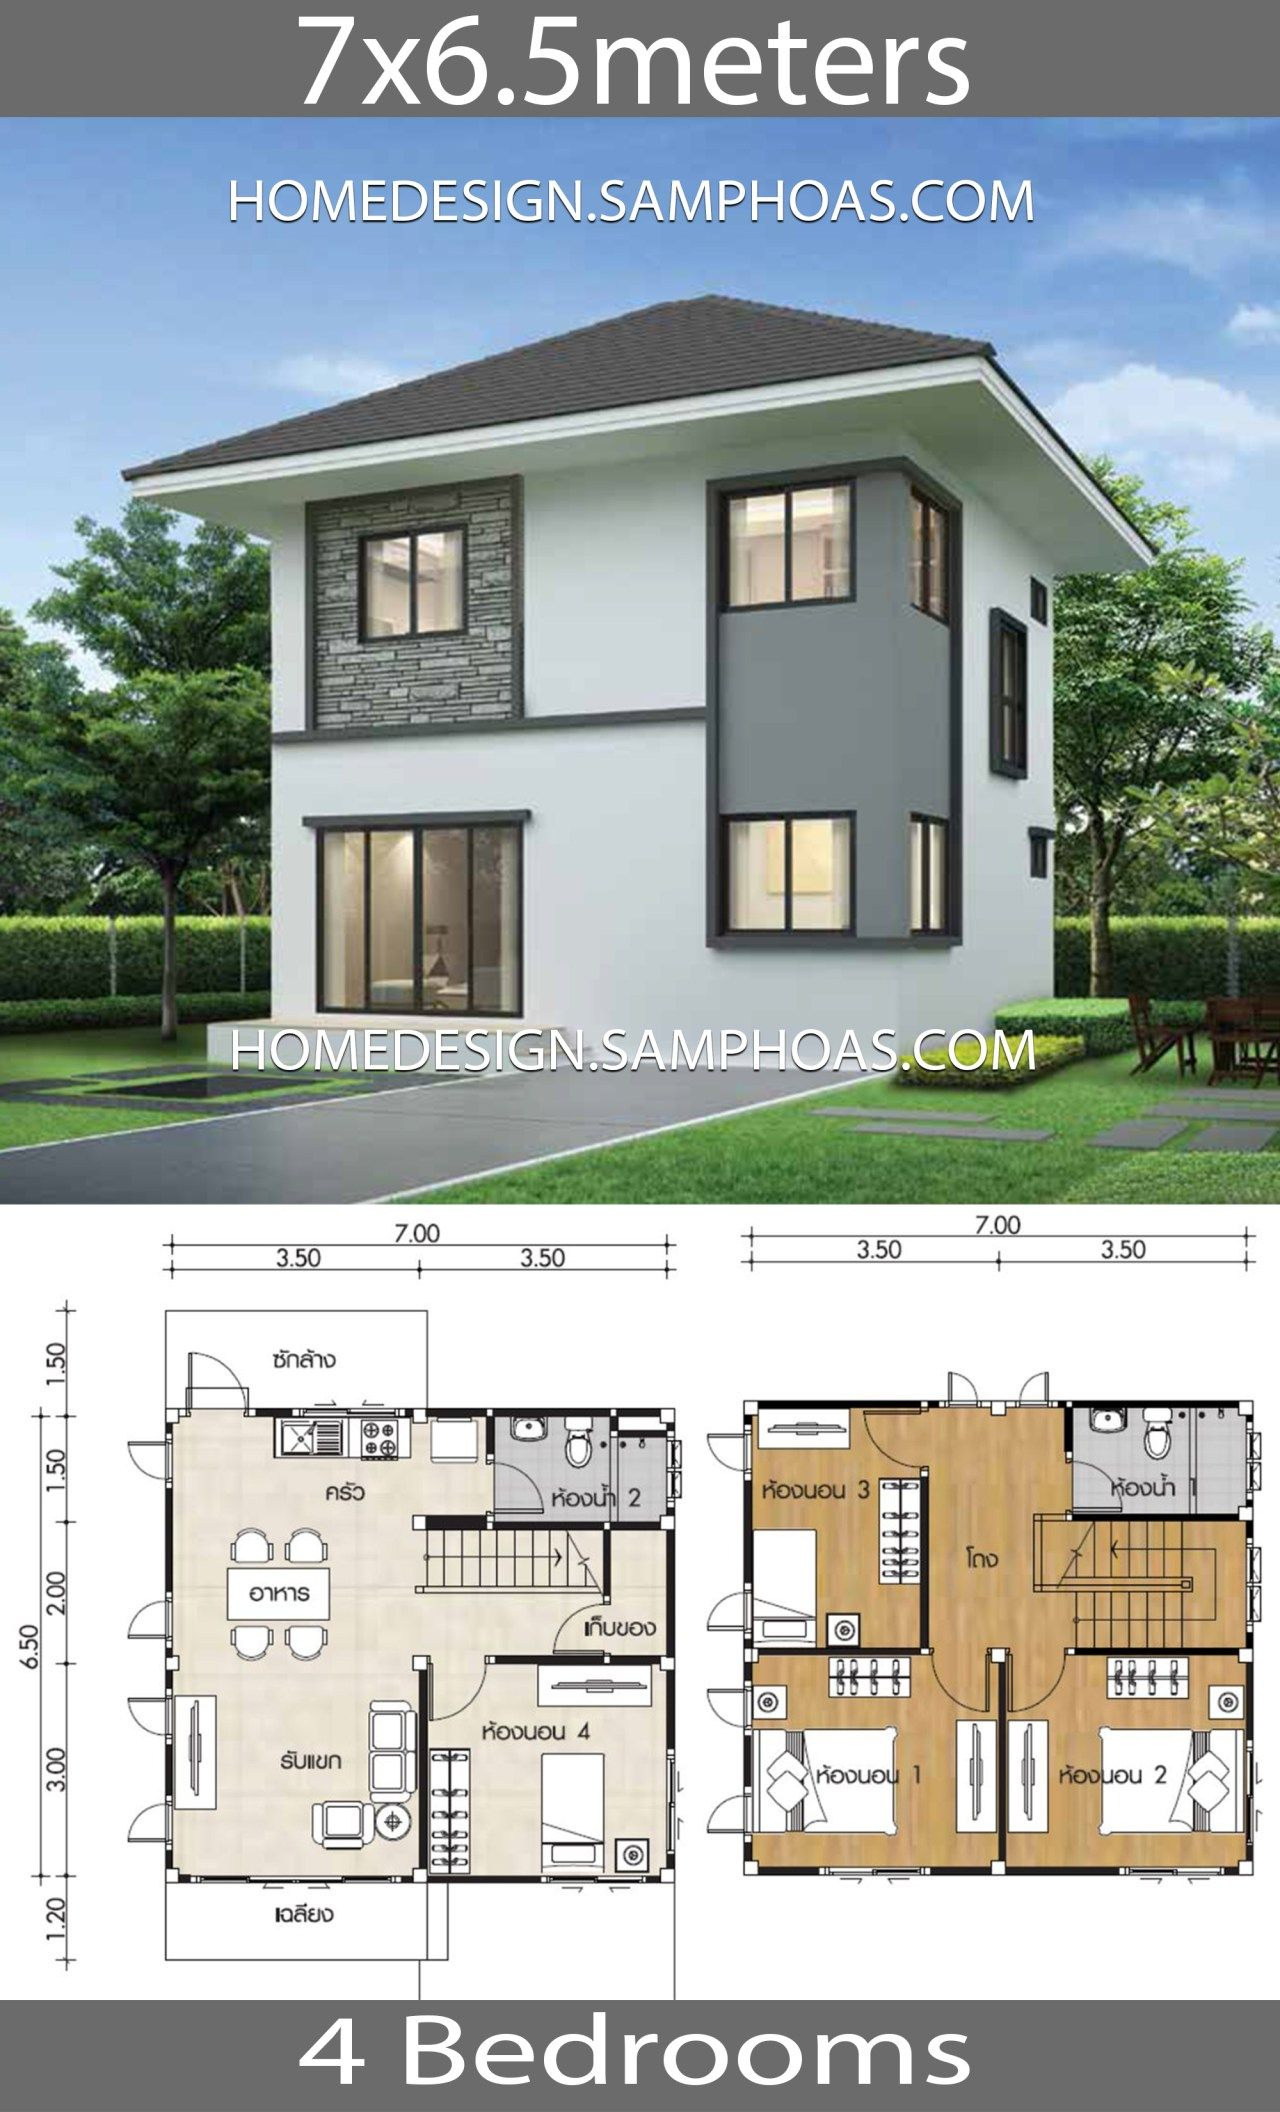 Small Modern Contemporary House Plans Best Of Small Home Plans 7x6 5m with 4 Bedrooms